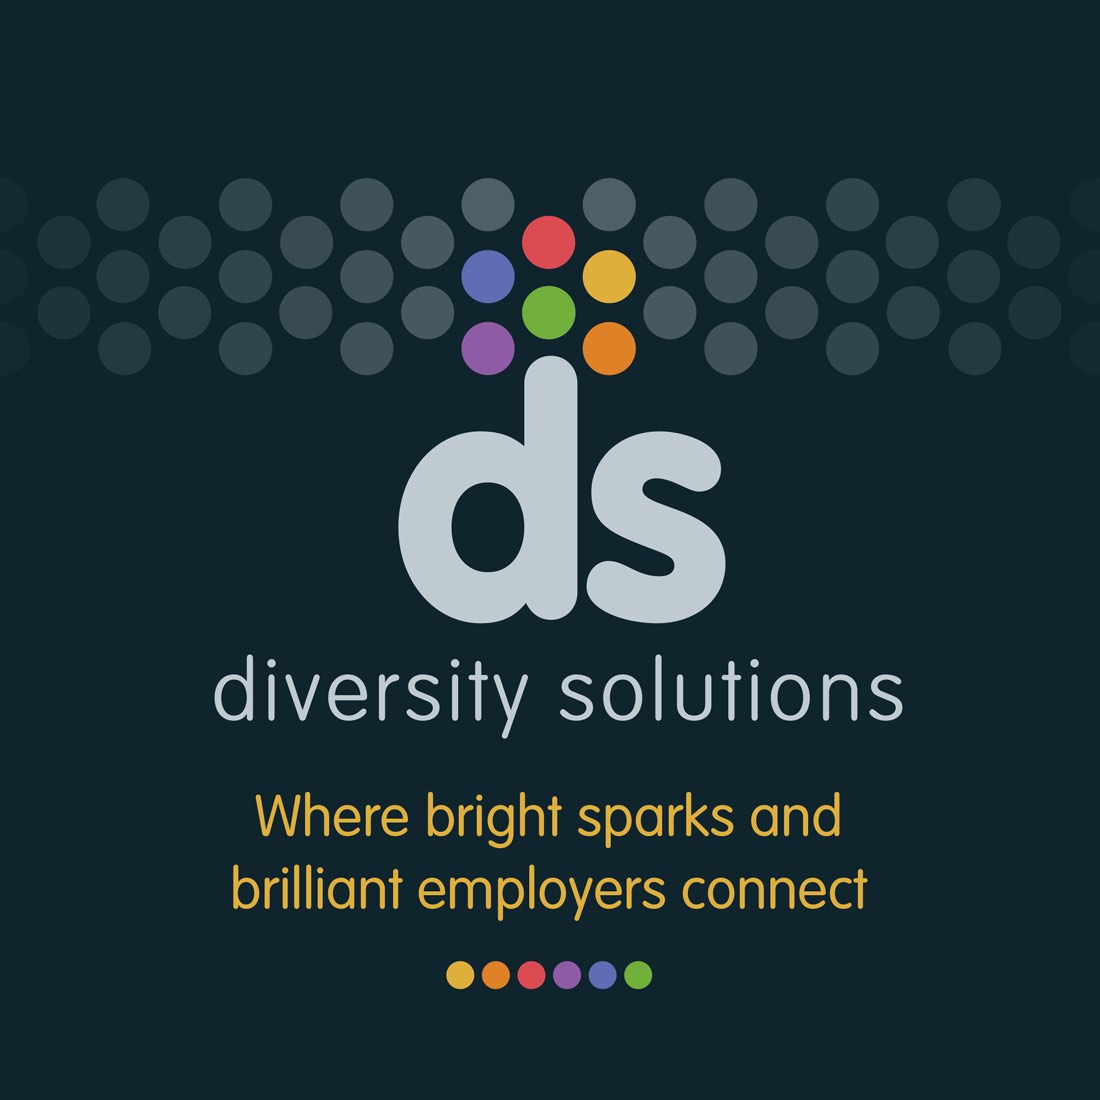 diversitysolutions